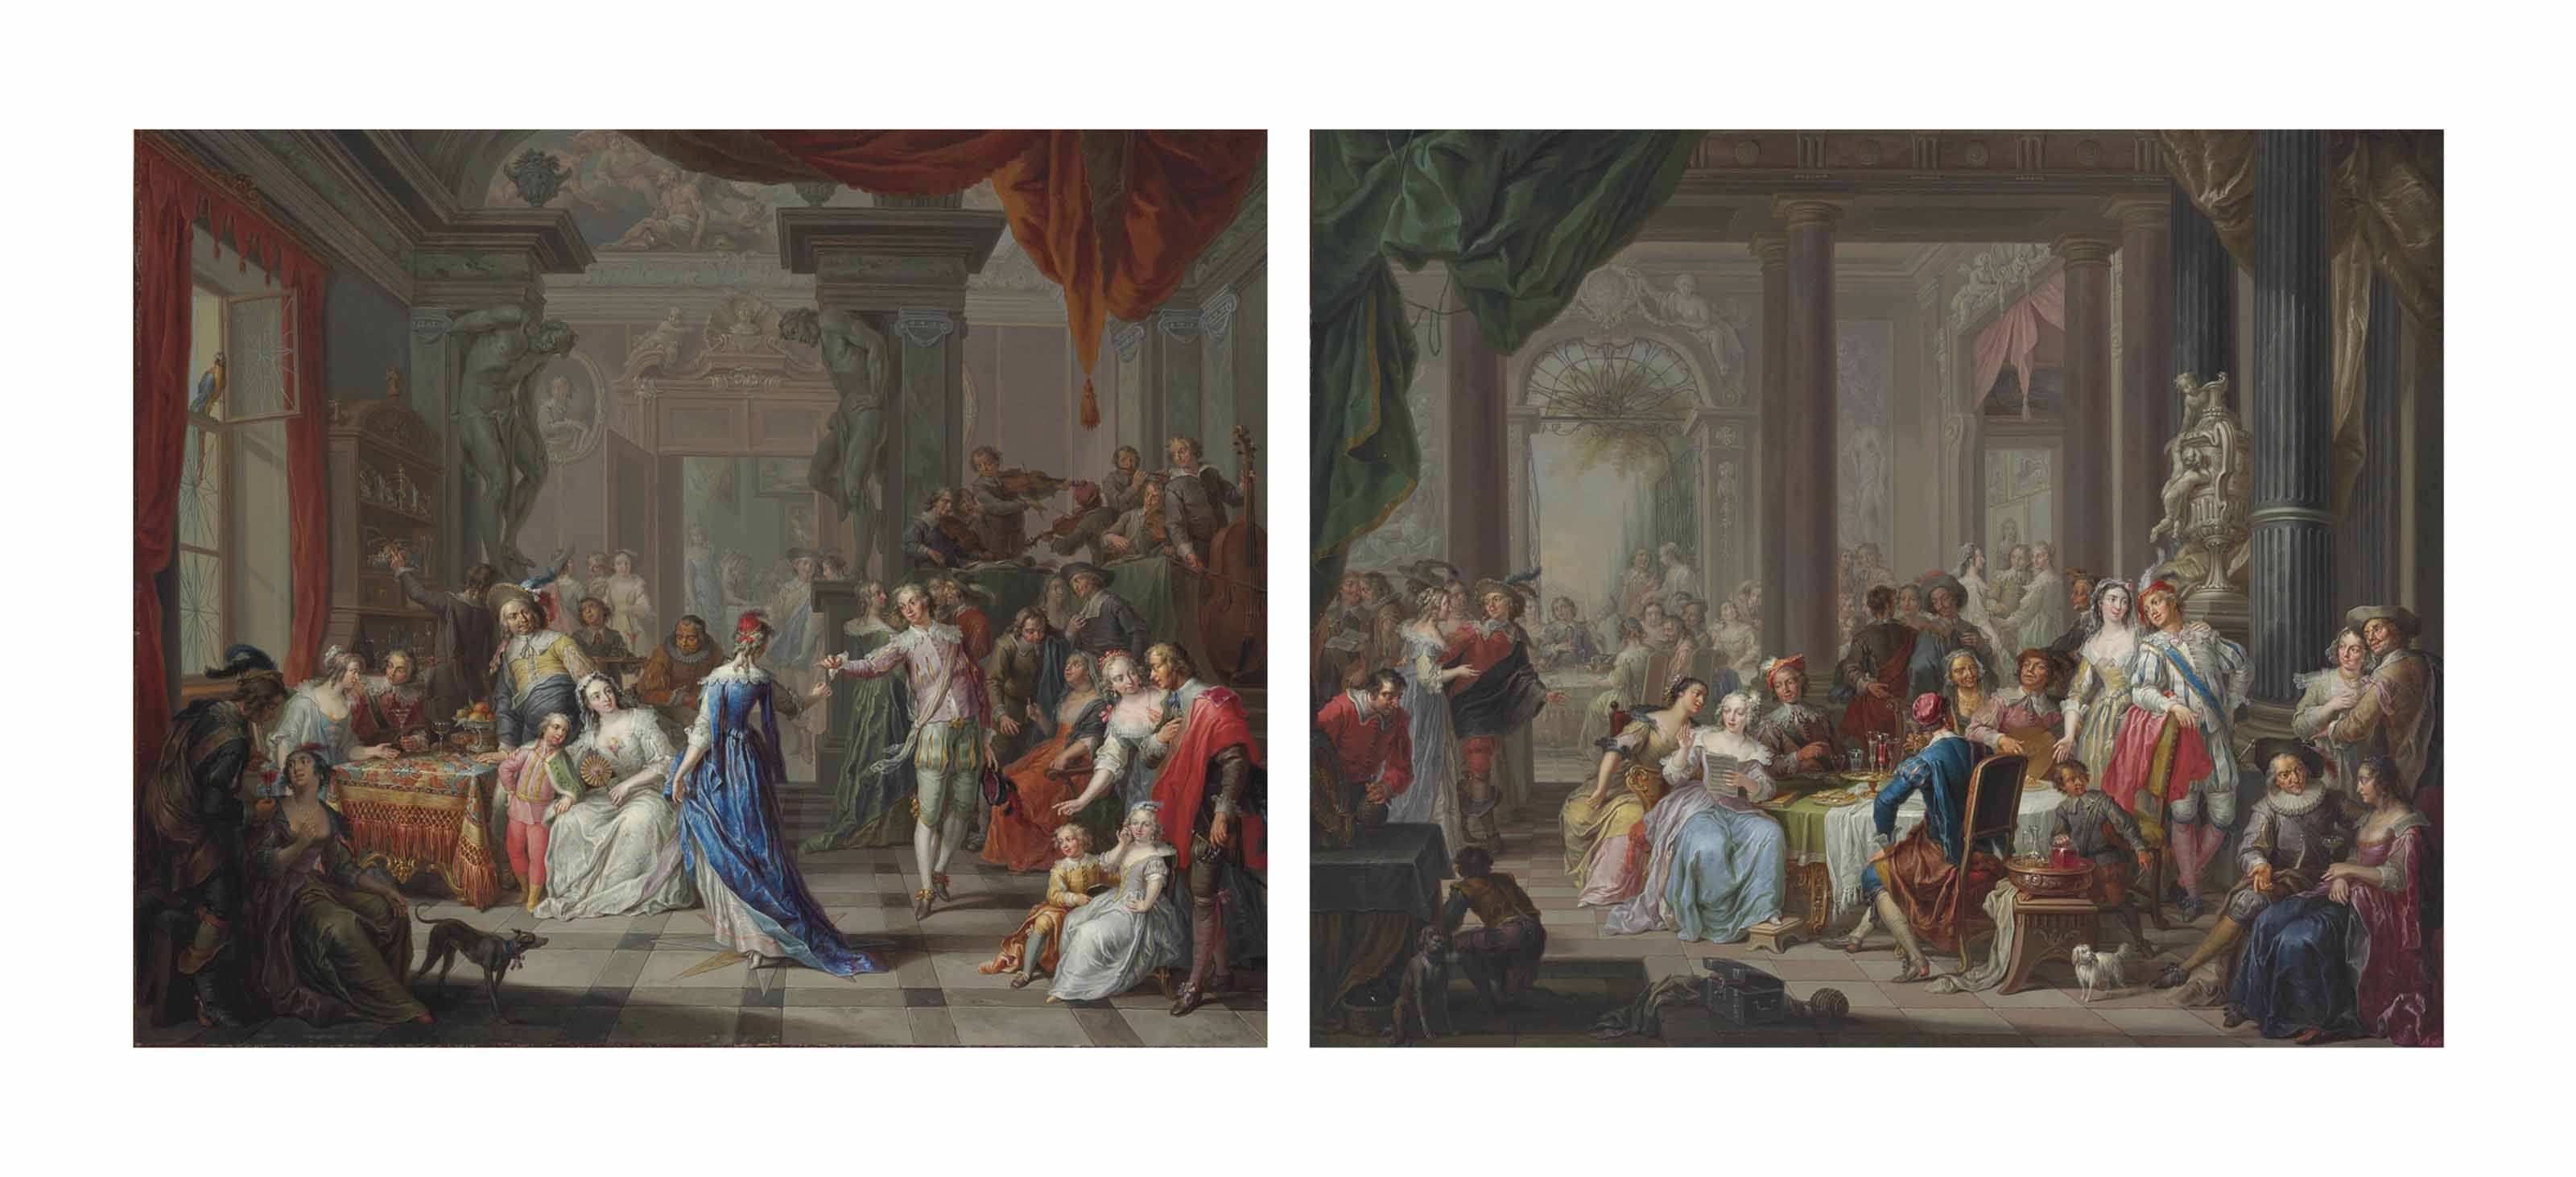 A musical banquet in a palace; and Elegant figures dancing and merrymaking in a palace